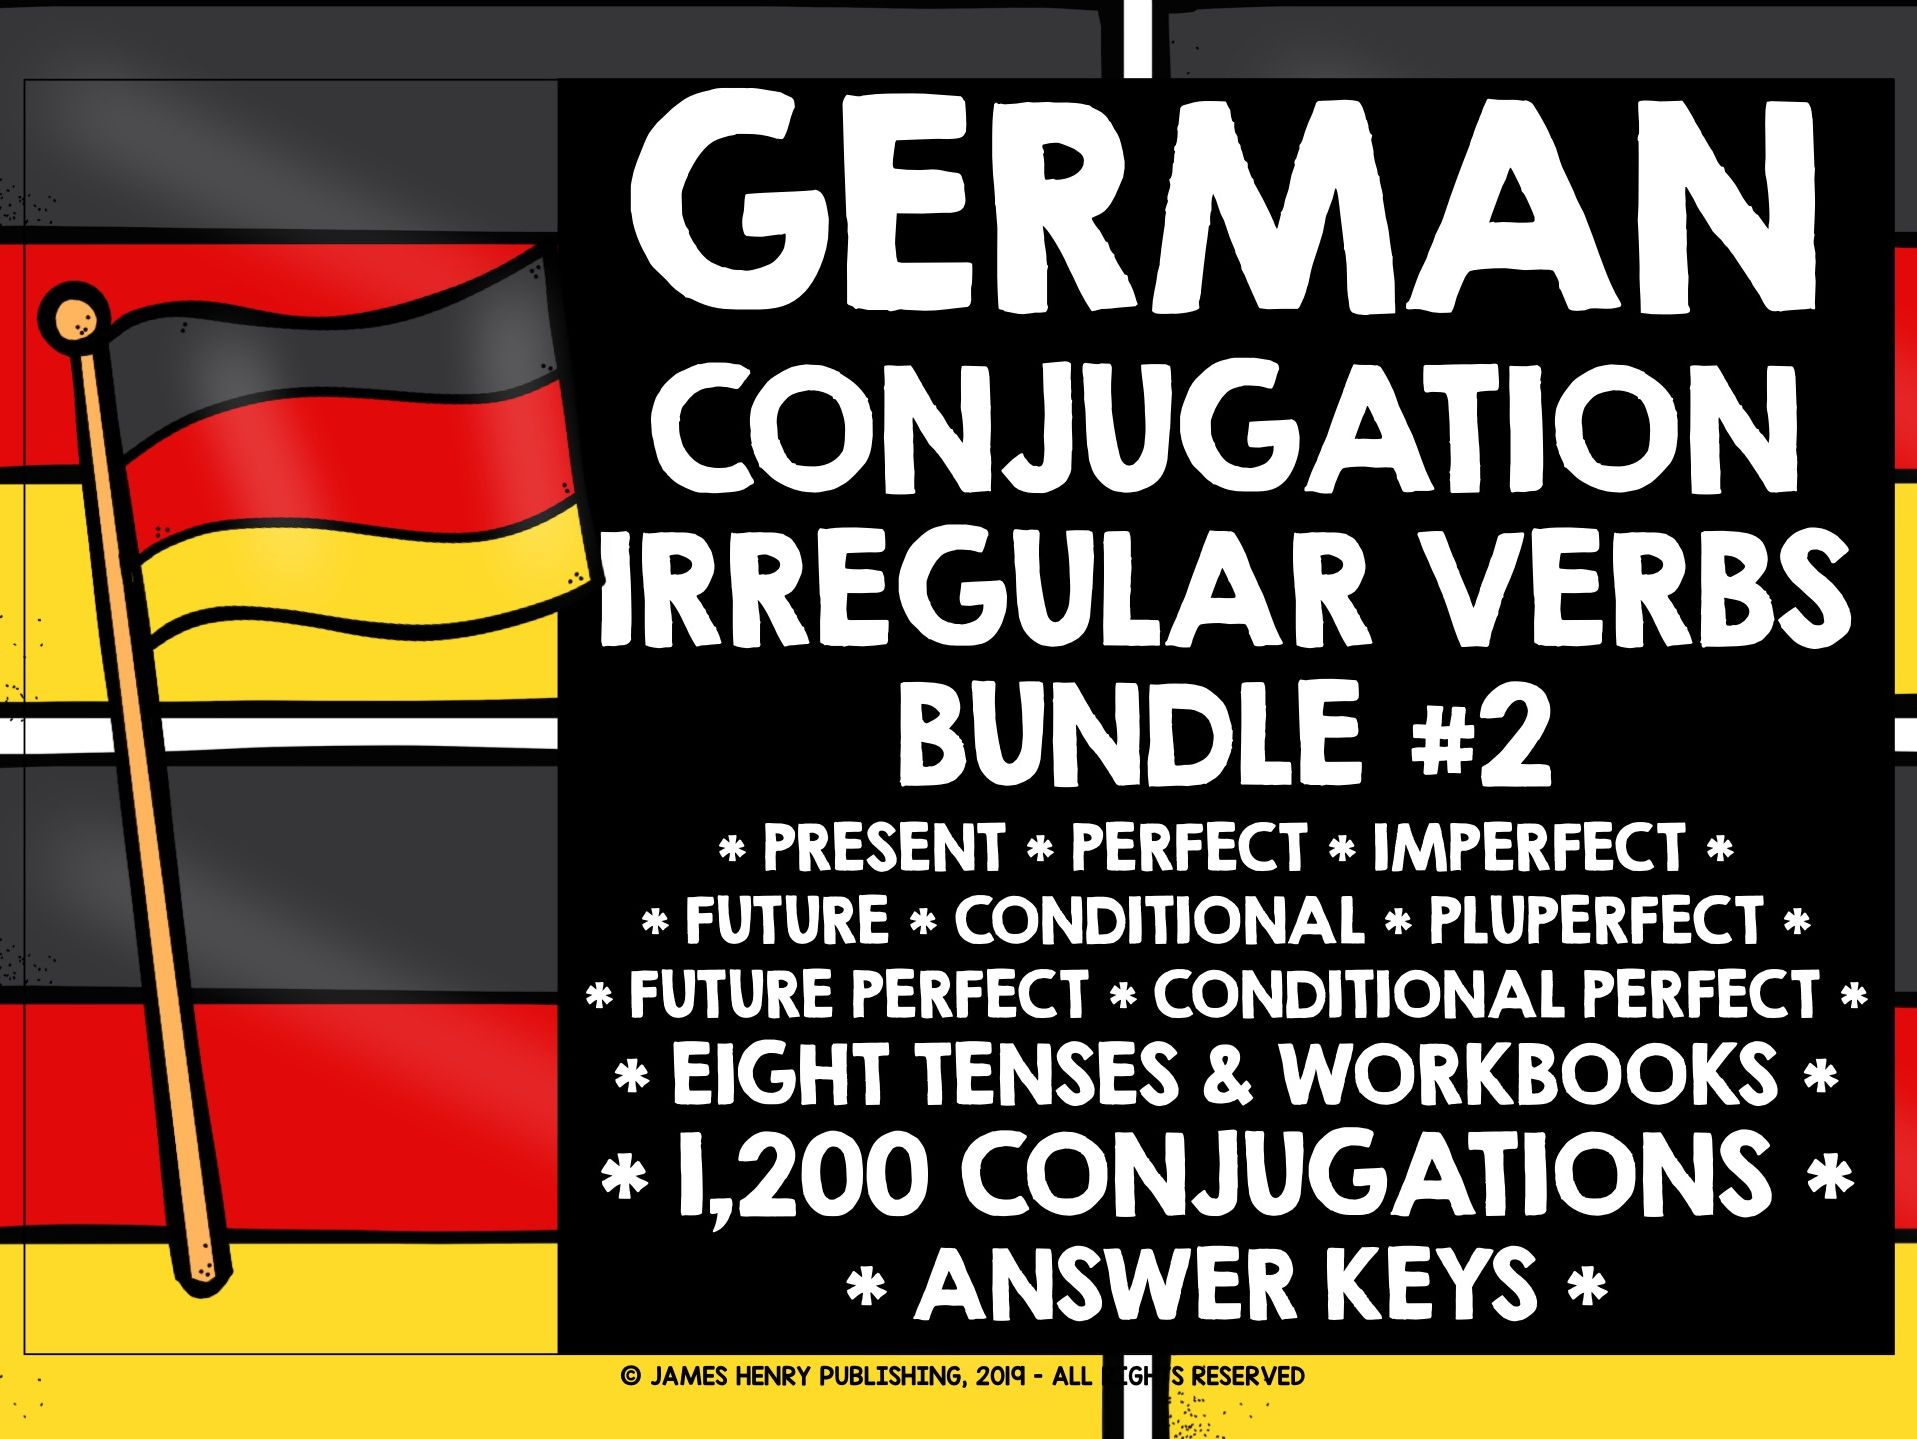 GERMAN IRREGULAR VERBS CONJUGATION BUNDLE #2